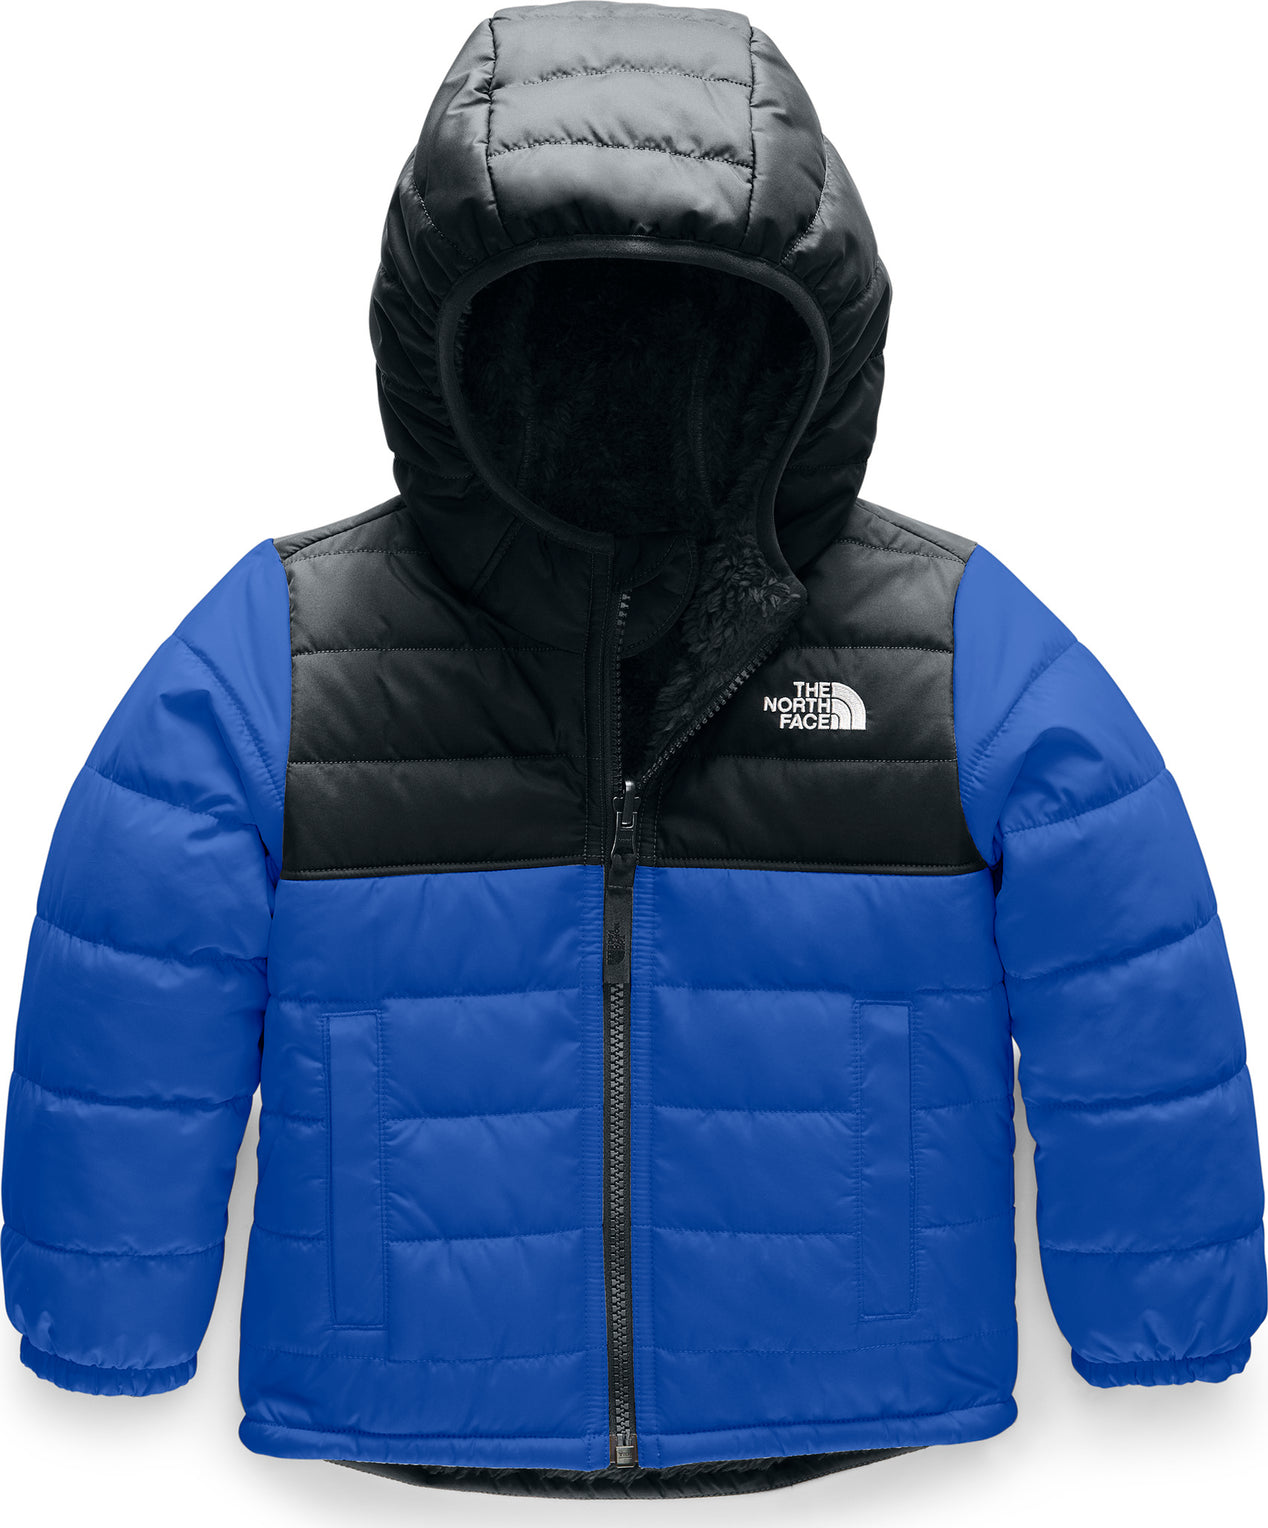 e2e165fc6 The North Face Reversible Mount Chimborazo Hoodie - Toddler Boy's